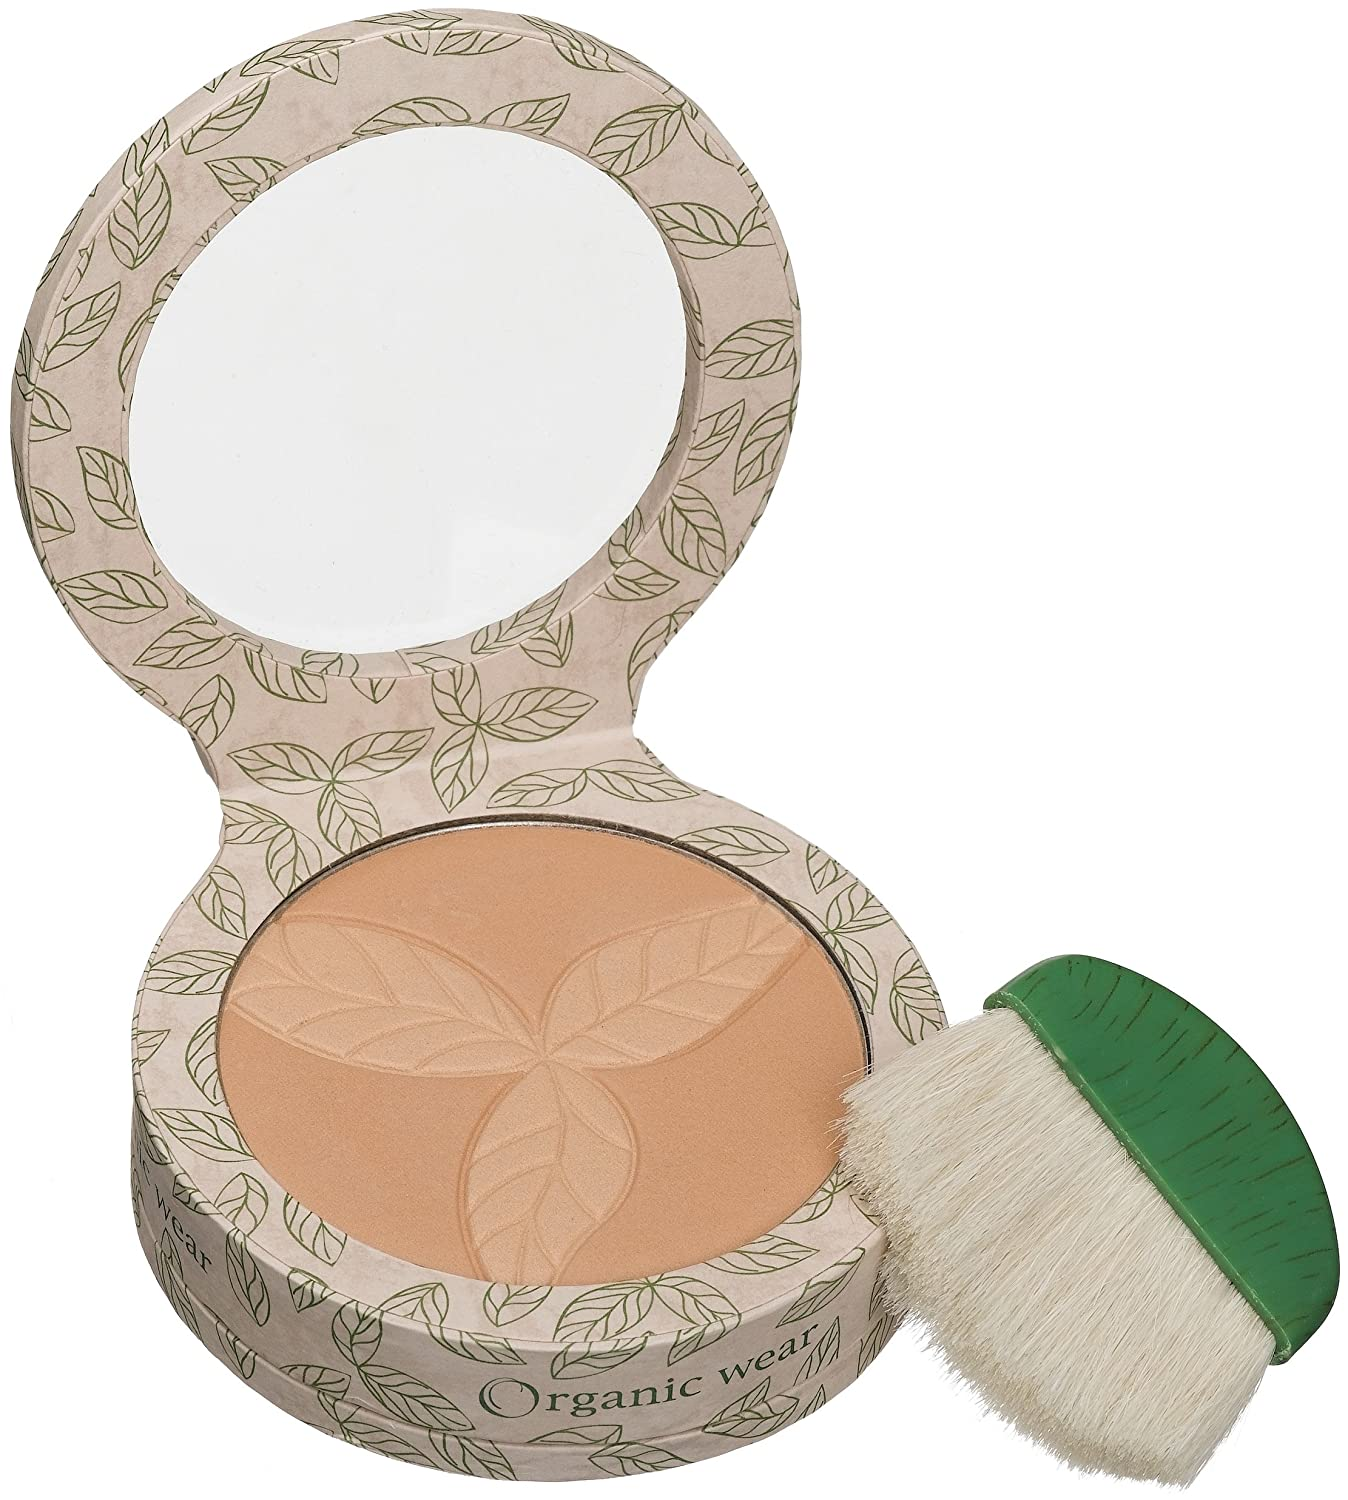 Amazon.com : Physicians Formula Organic Wear 100% Natural Pressed ...